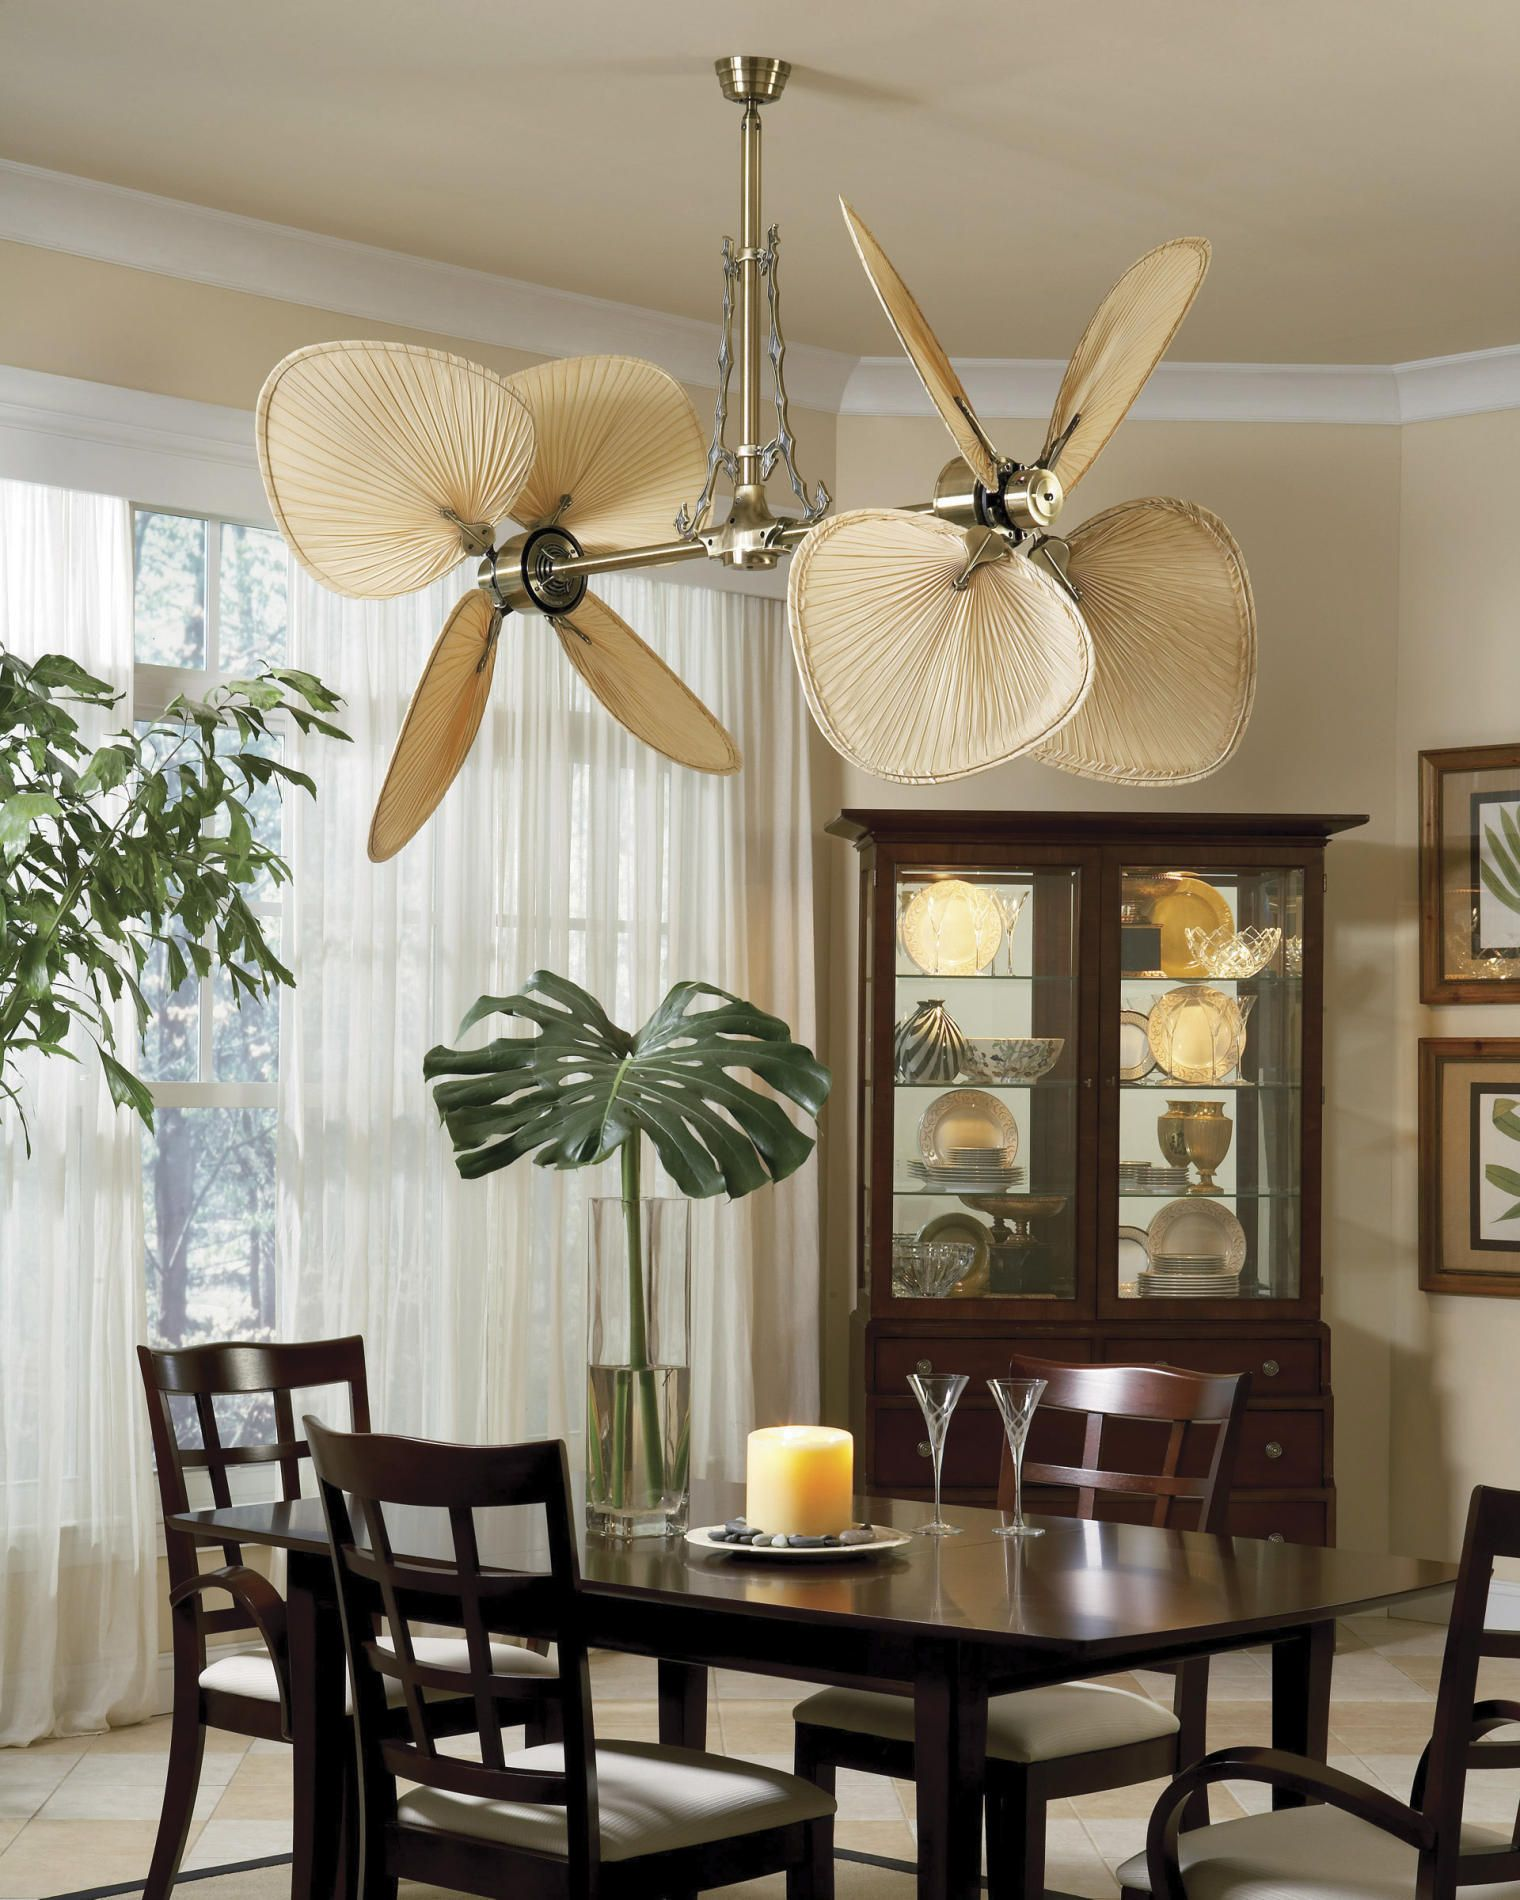 Bamboo Ceiling Fan Covers